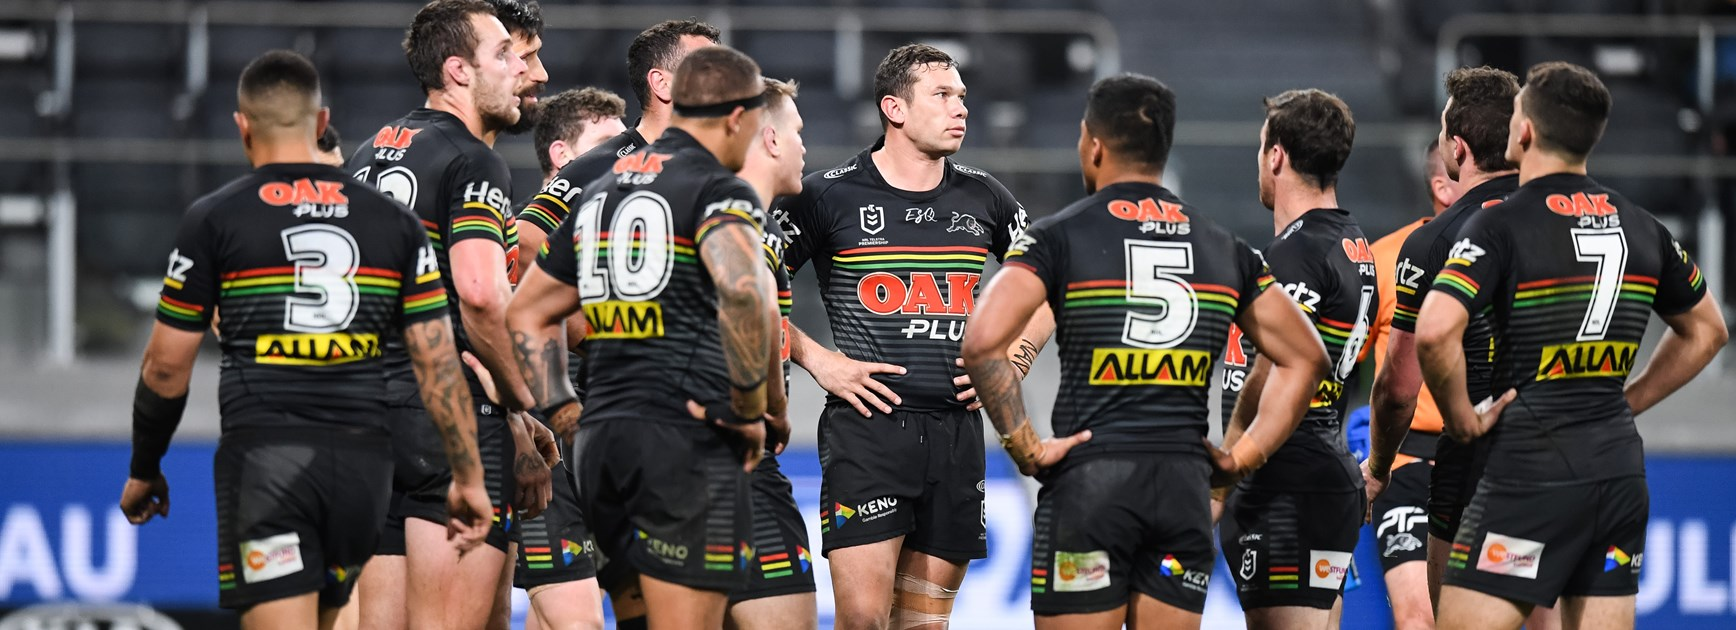 The Penrith Panthers during their loss to the Bulldogs.